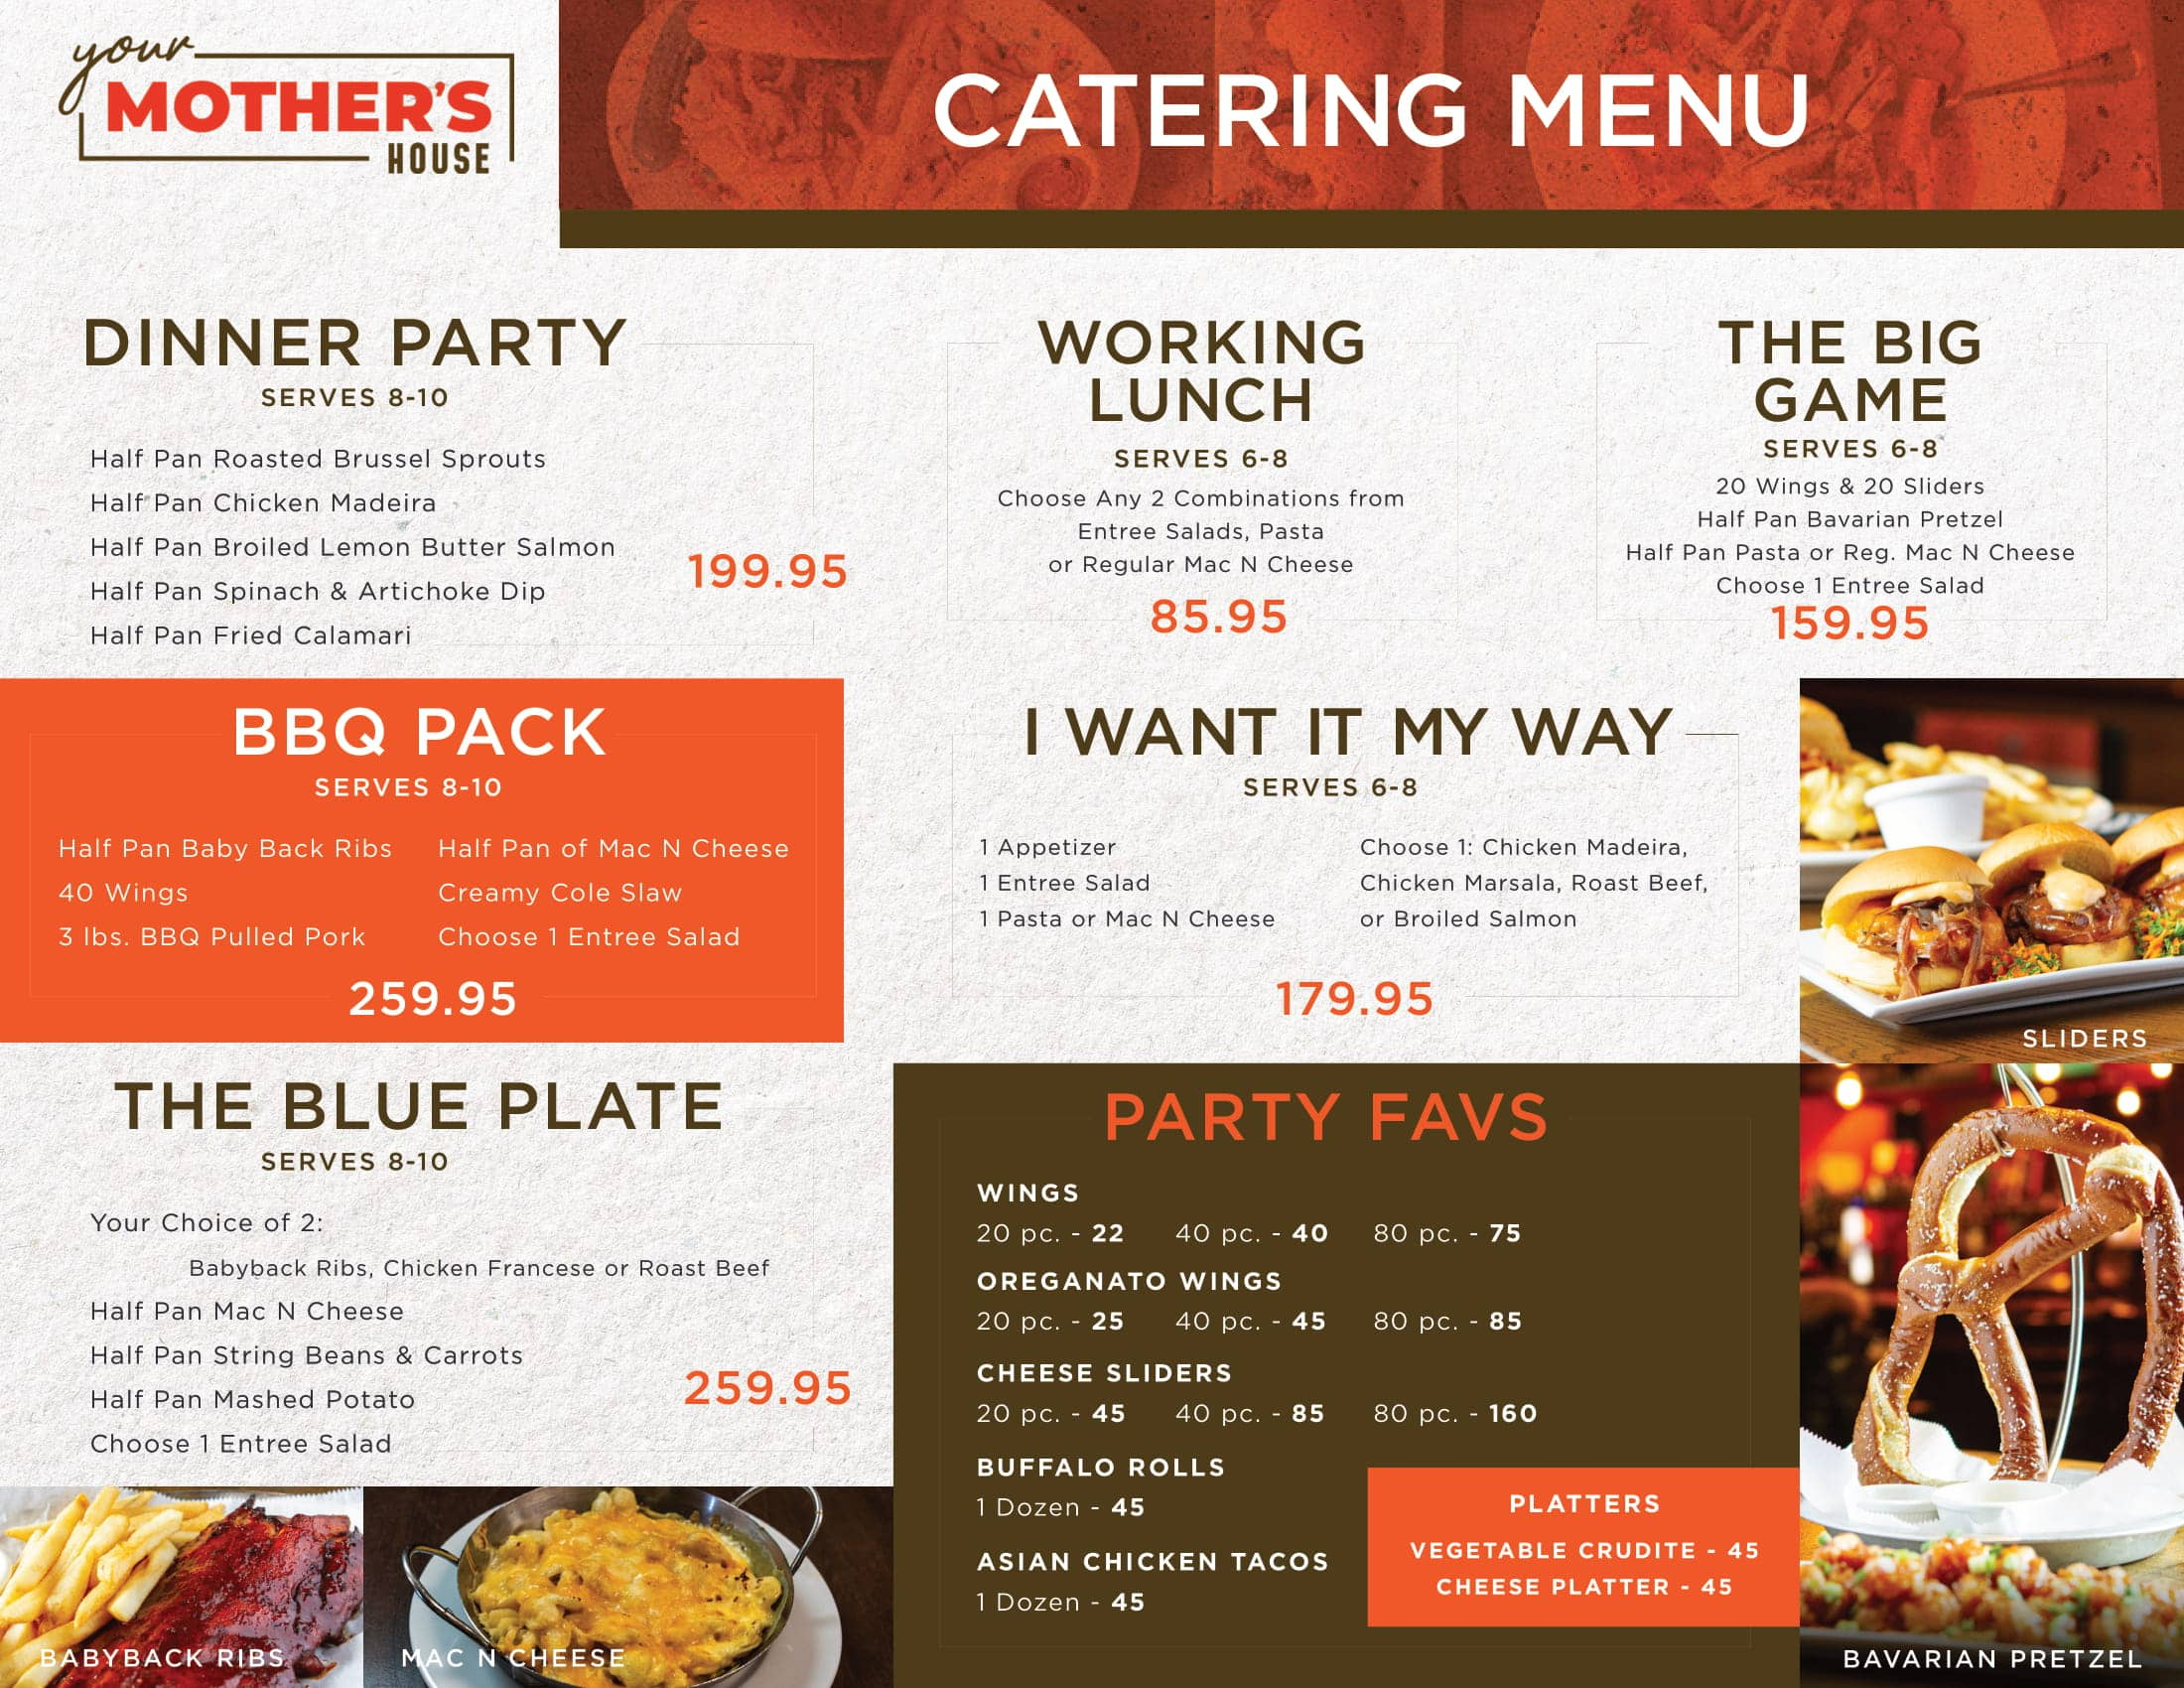 Your Mother's House - Catering Menu Page 1